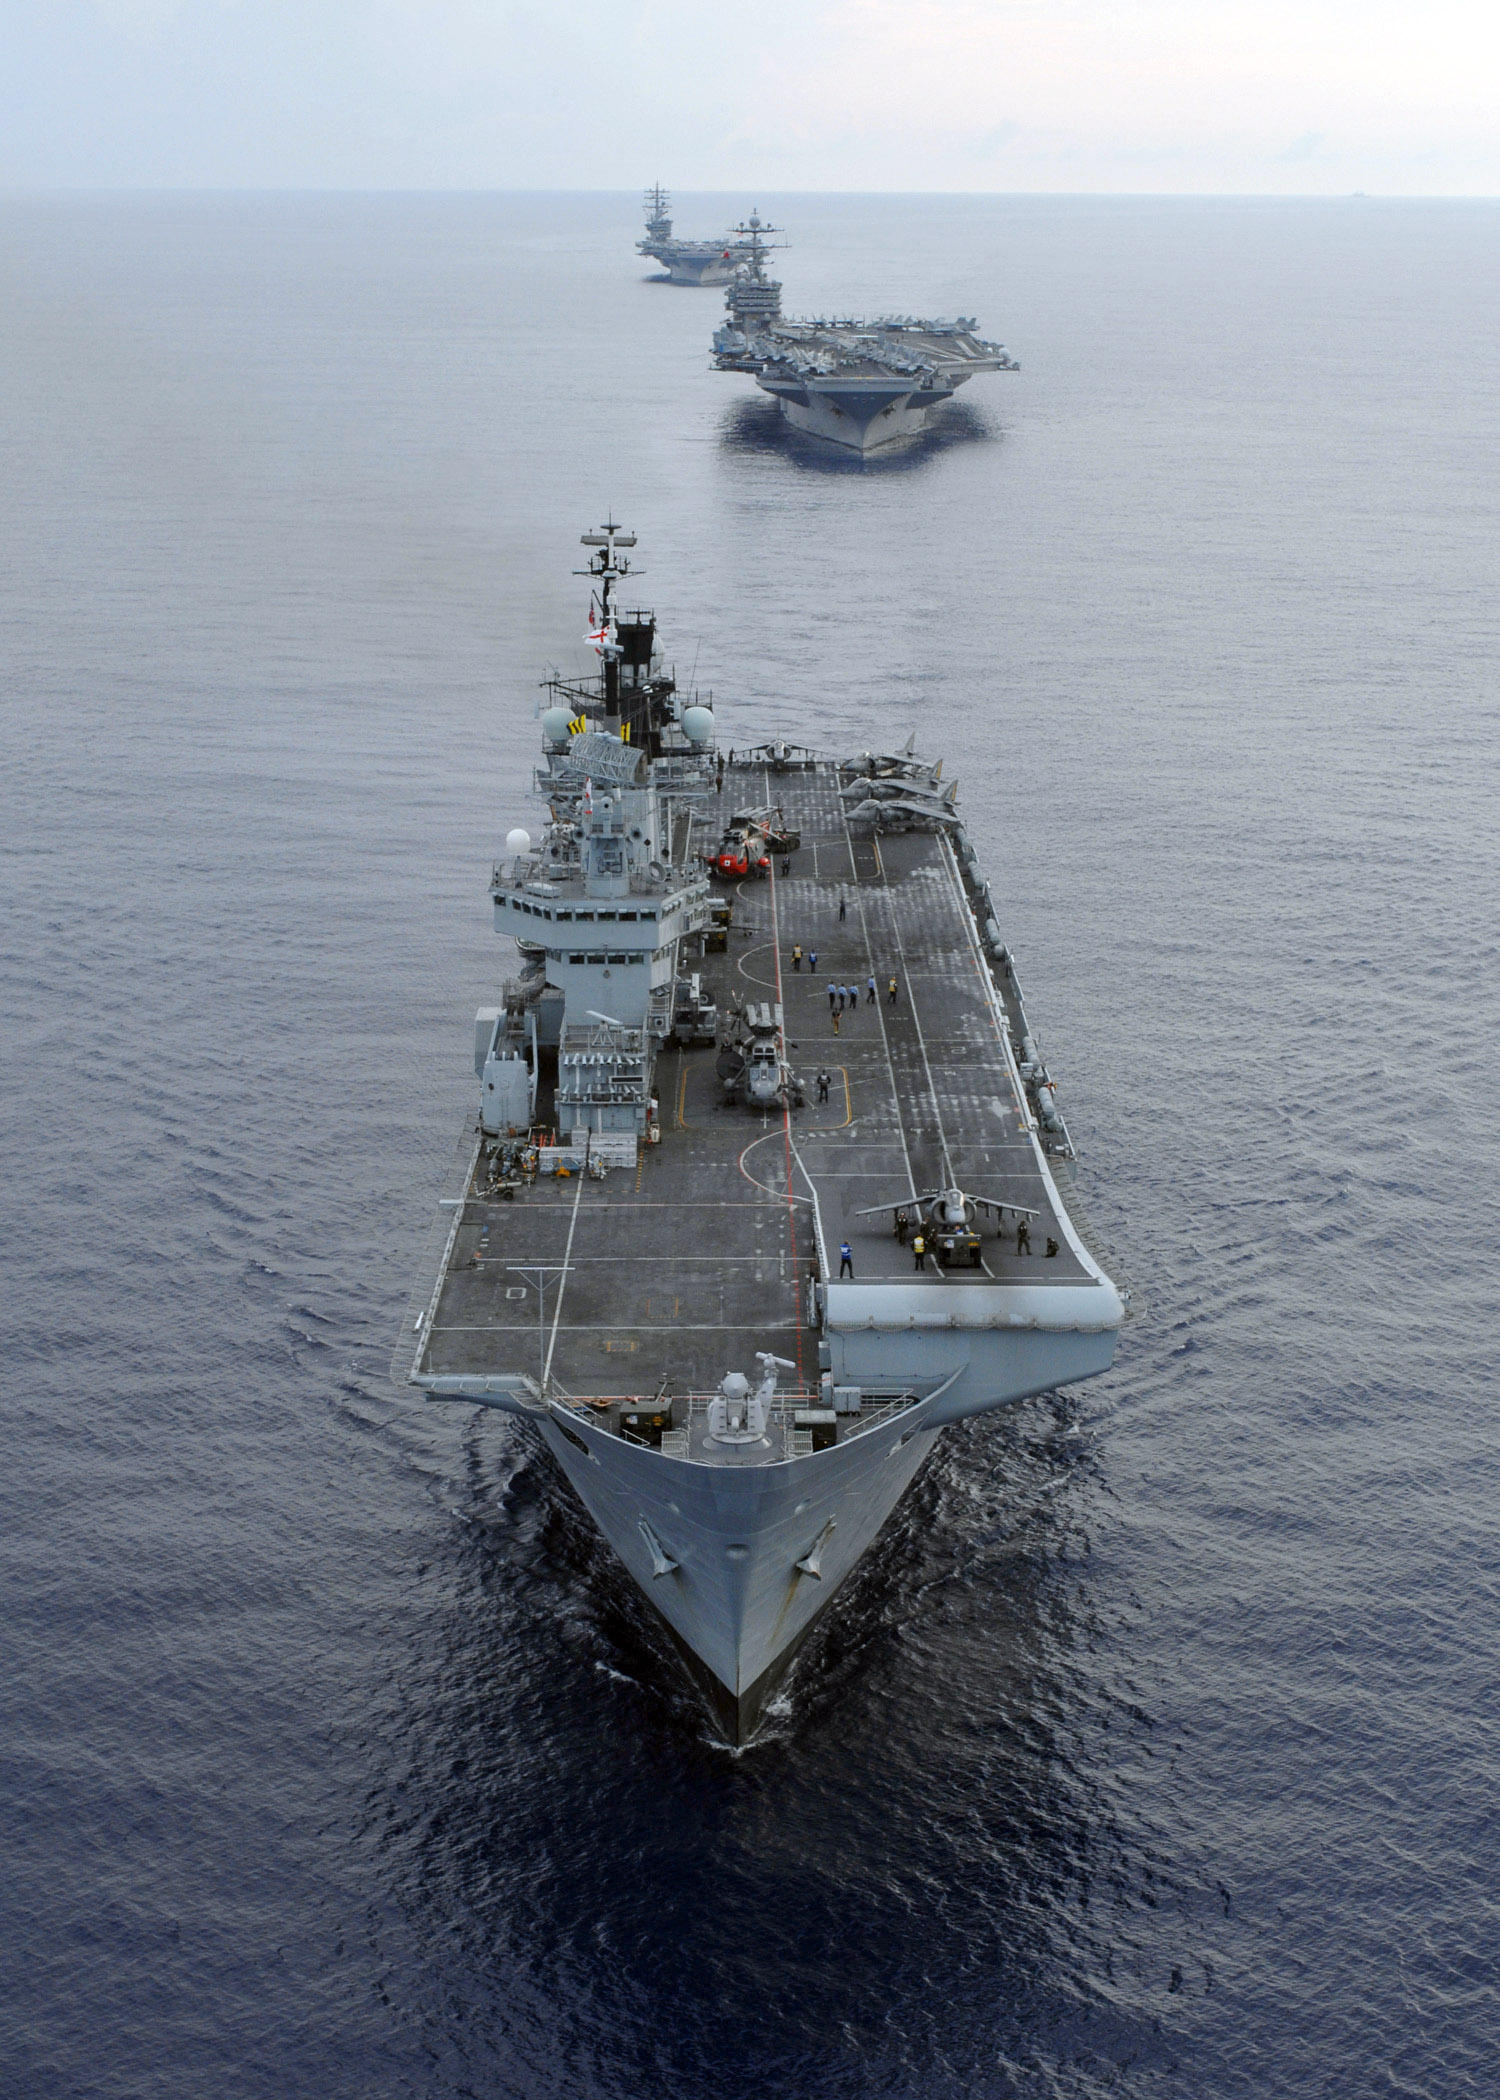 The U.K. Royal Navy Invincible-class aircraft carrier HMS Illustrious (R 06), and Nimitz-class aircraft carriers USS Harry S. Truman (CVN-75) and USS Dwight D. Eisenhower (CVN-69) in 2007. US Navy Photo